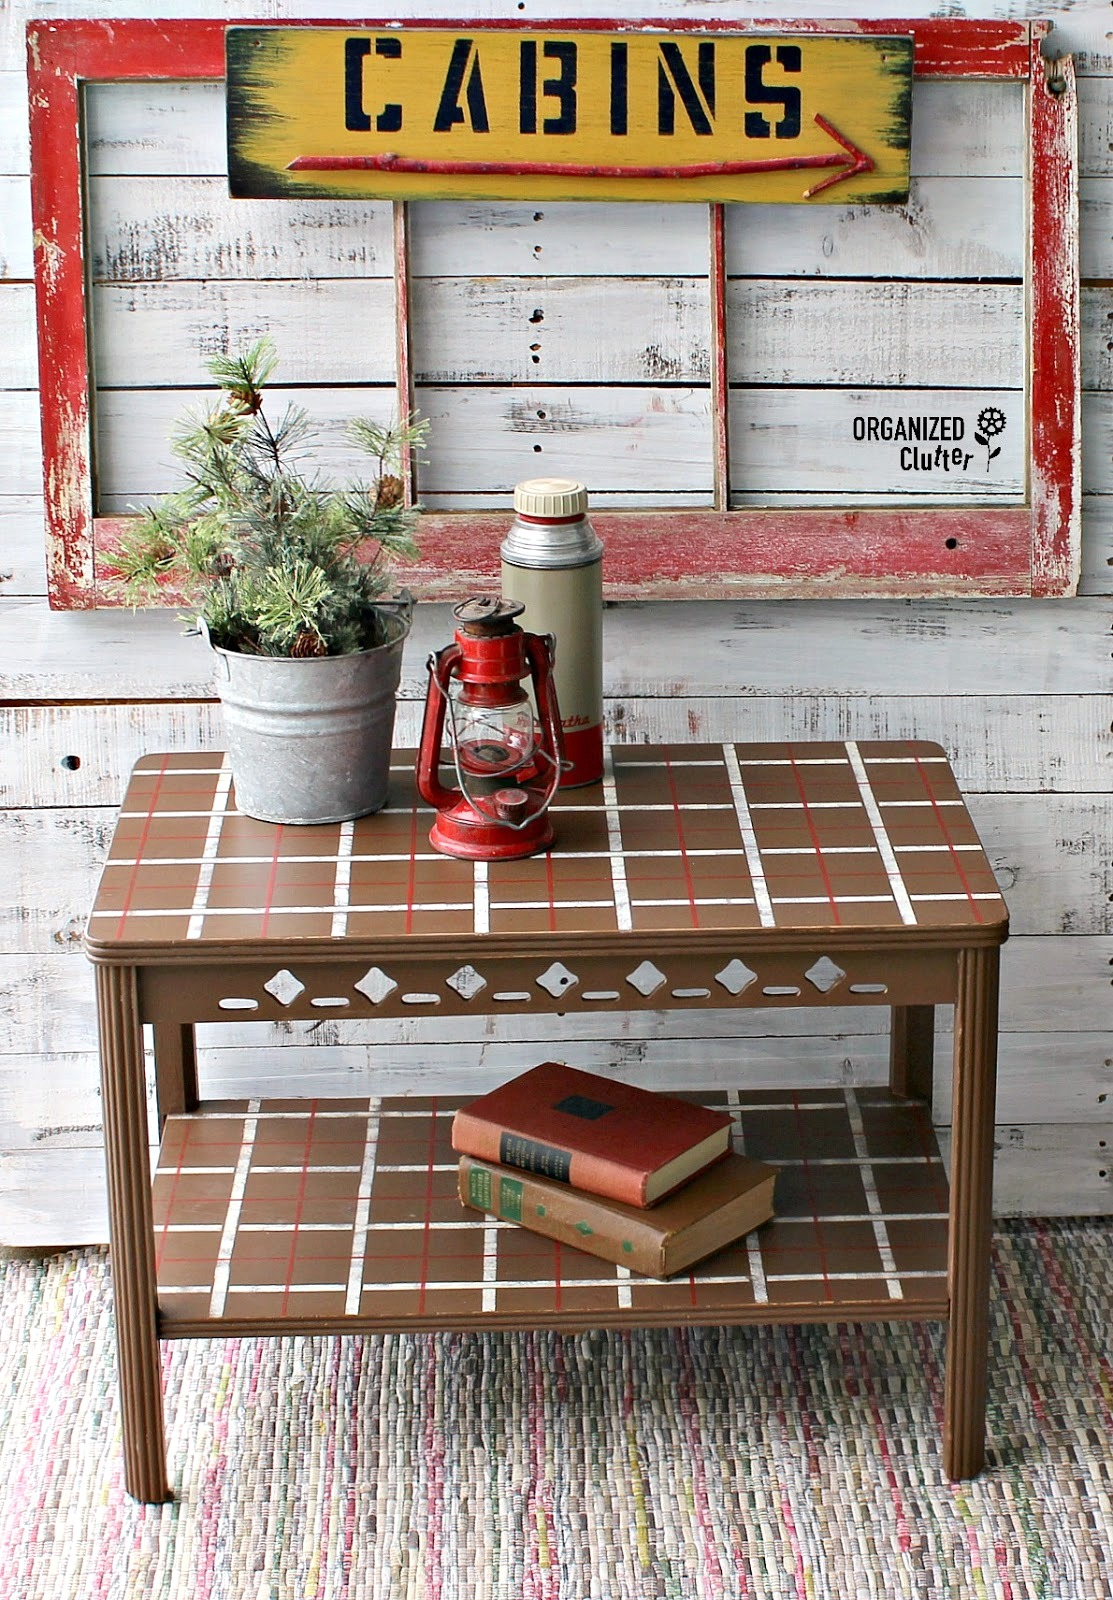 Cabin inspired plaid vintage table by Organized Clutter, featured on Funky Junk Interiors